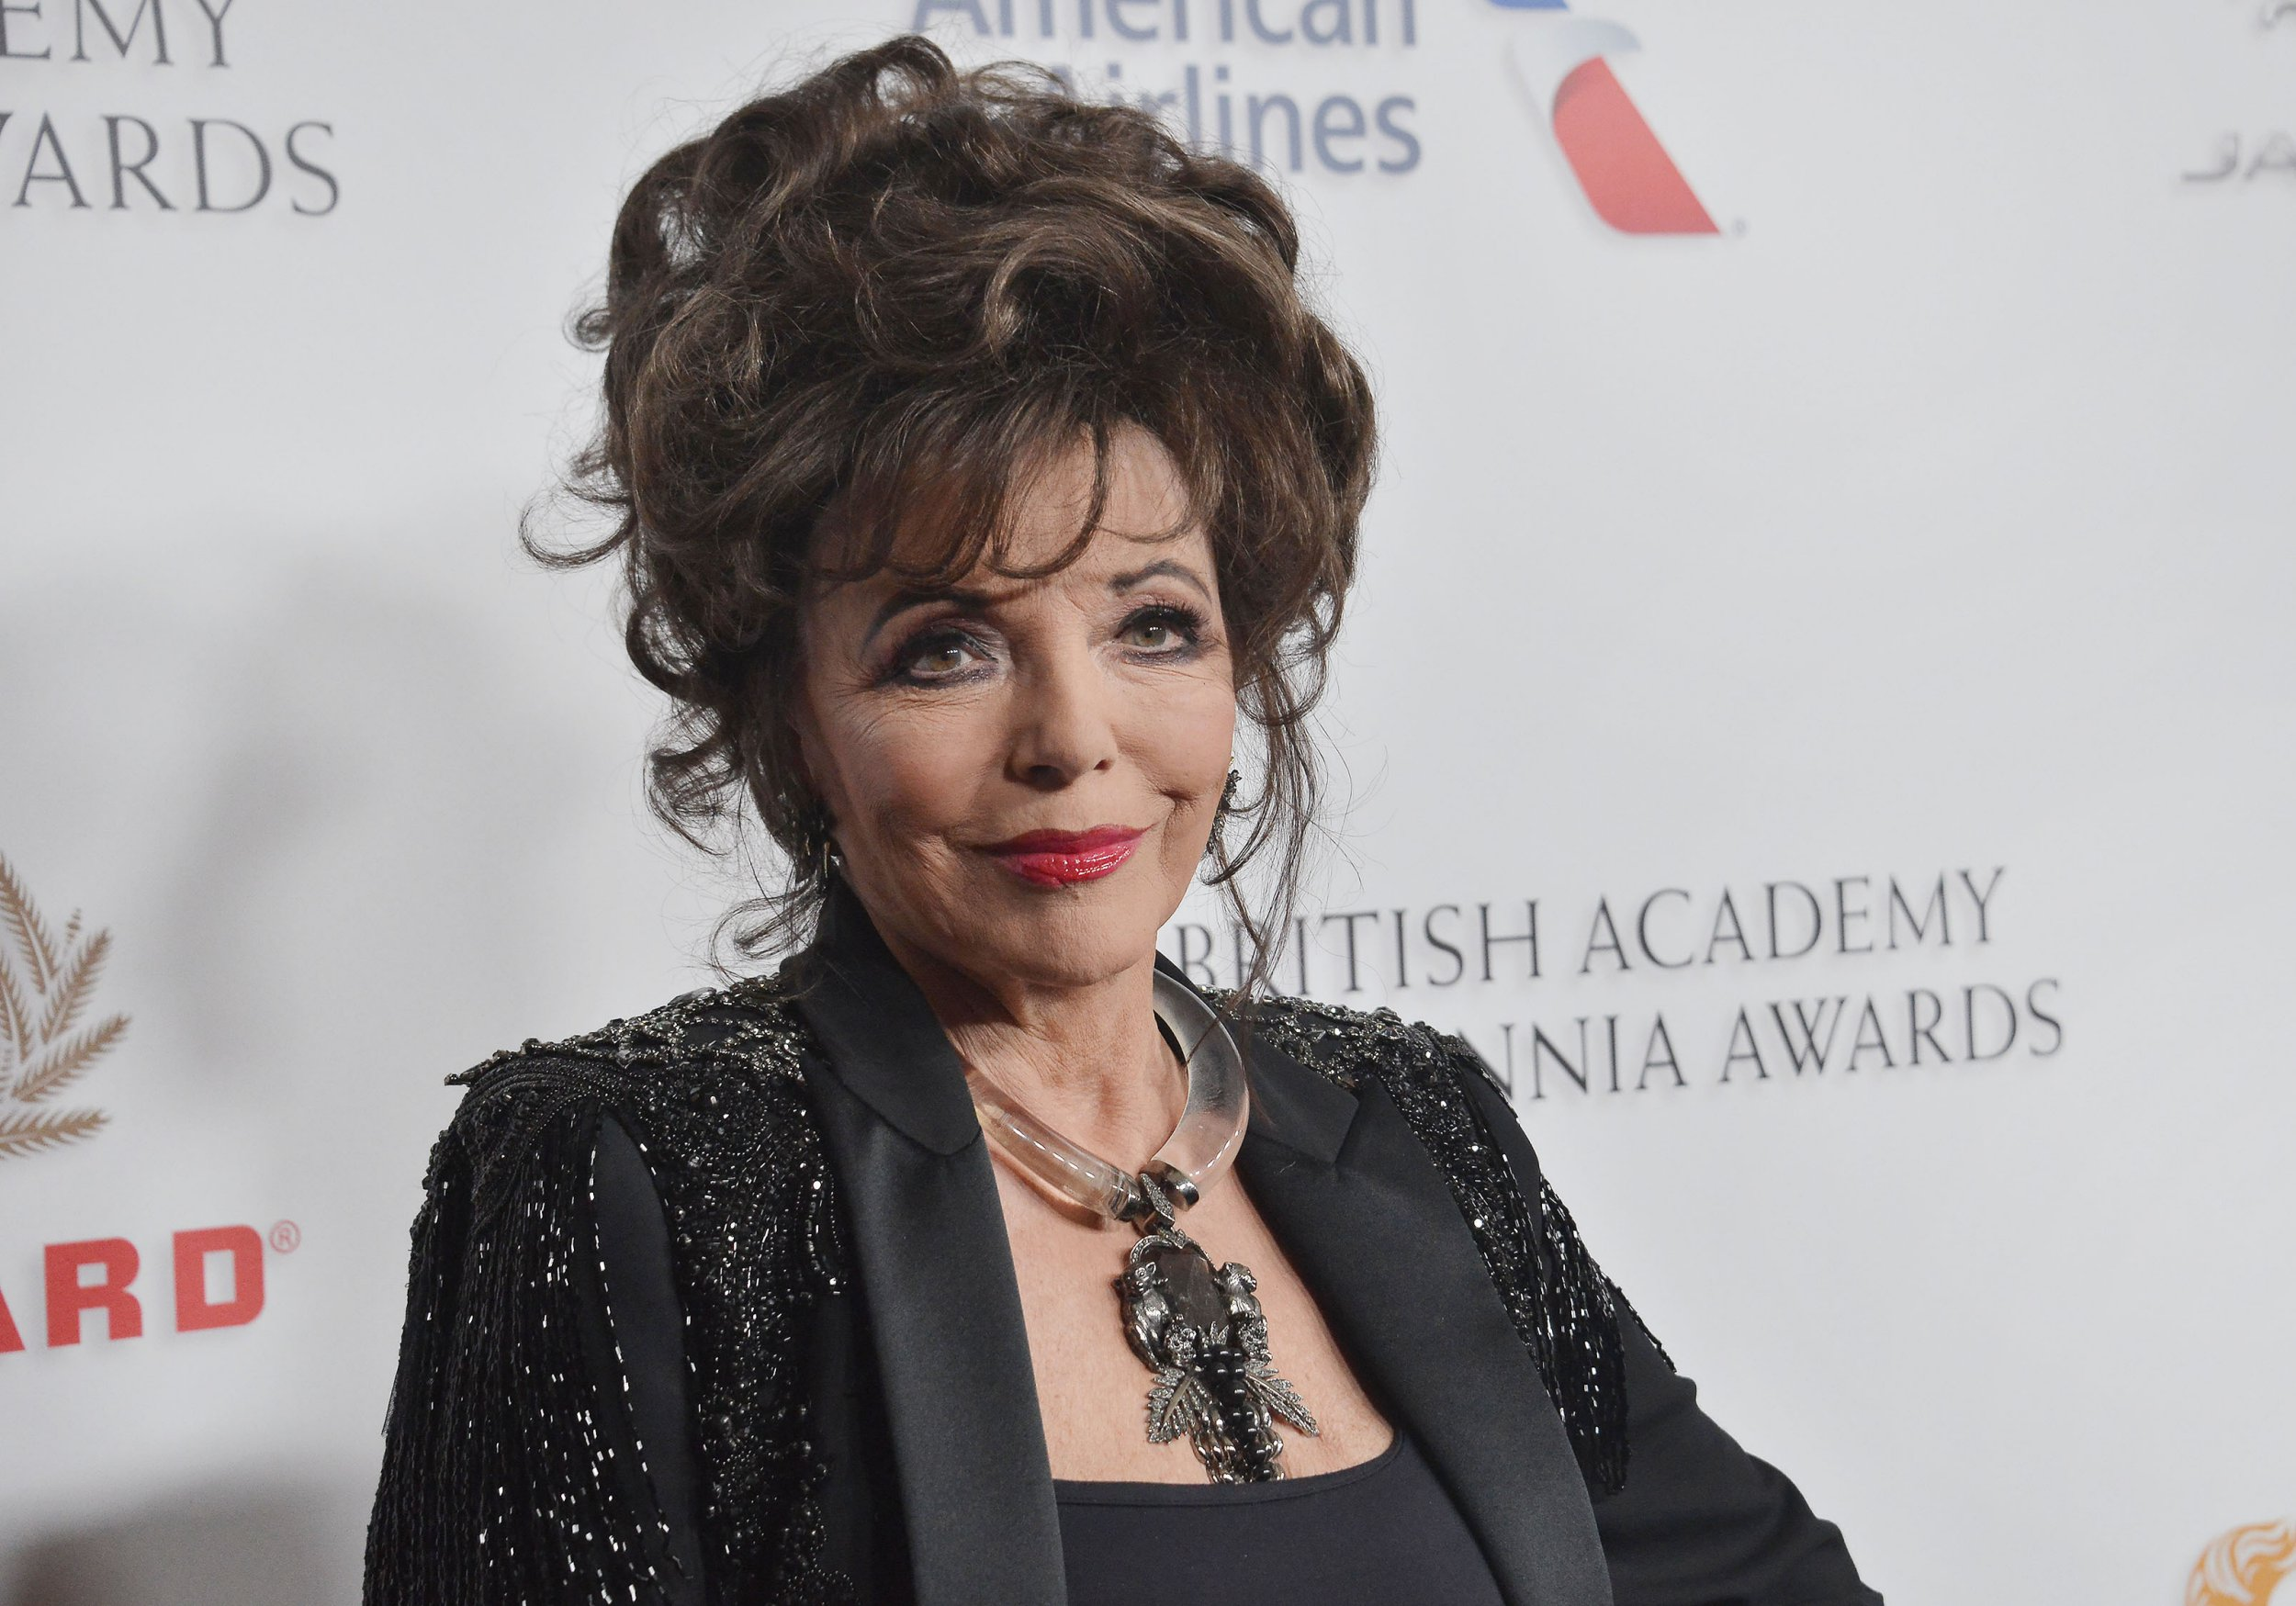 Joan Collins arrives at the 2018 British Academy Britannia Awards held at The Beverly Hilton in Beverly Hills, CA on Friday, ?October 26, 2018. (Photo By Sthanlee B. Mirador/Sipa USA)